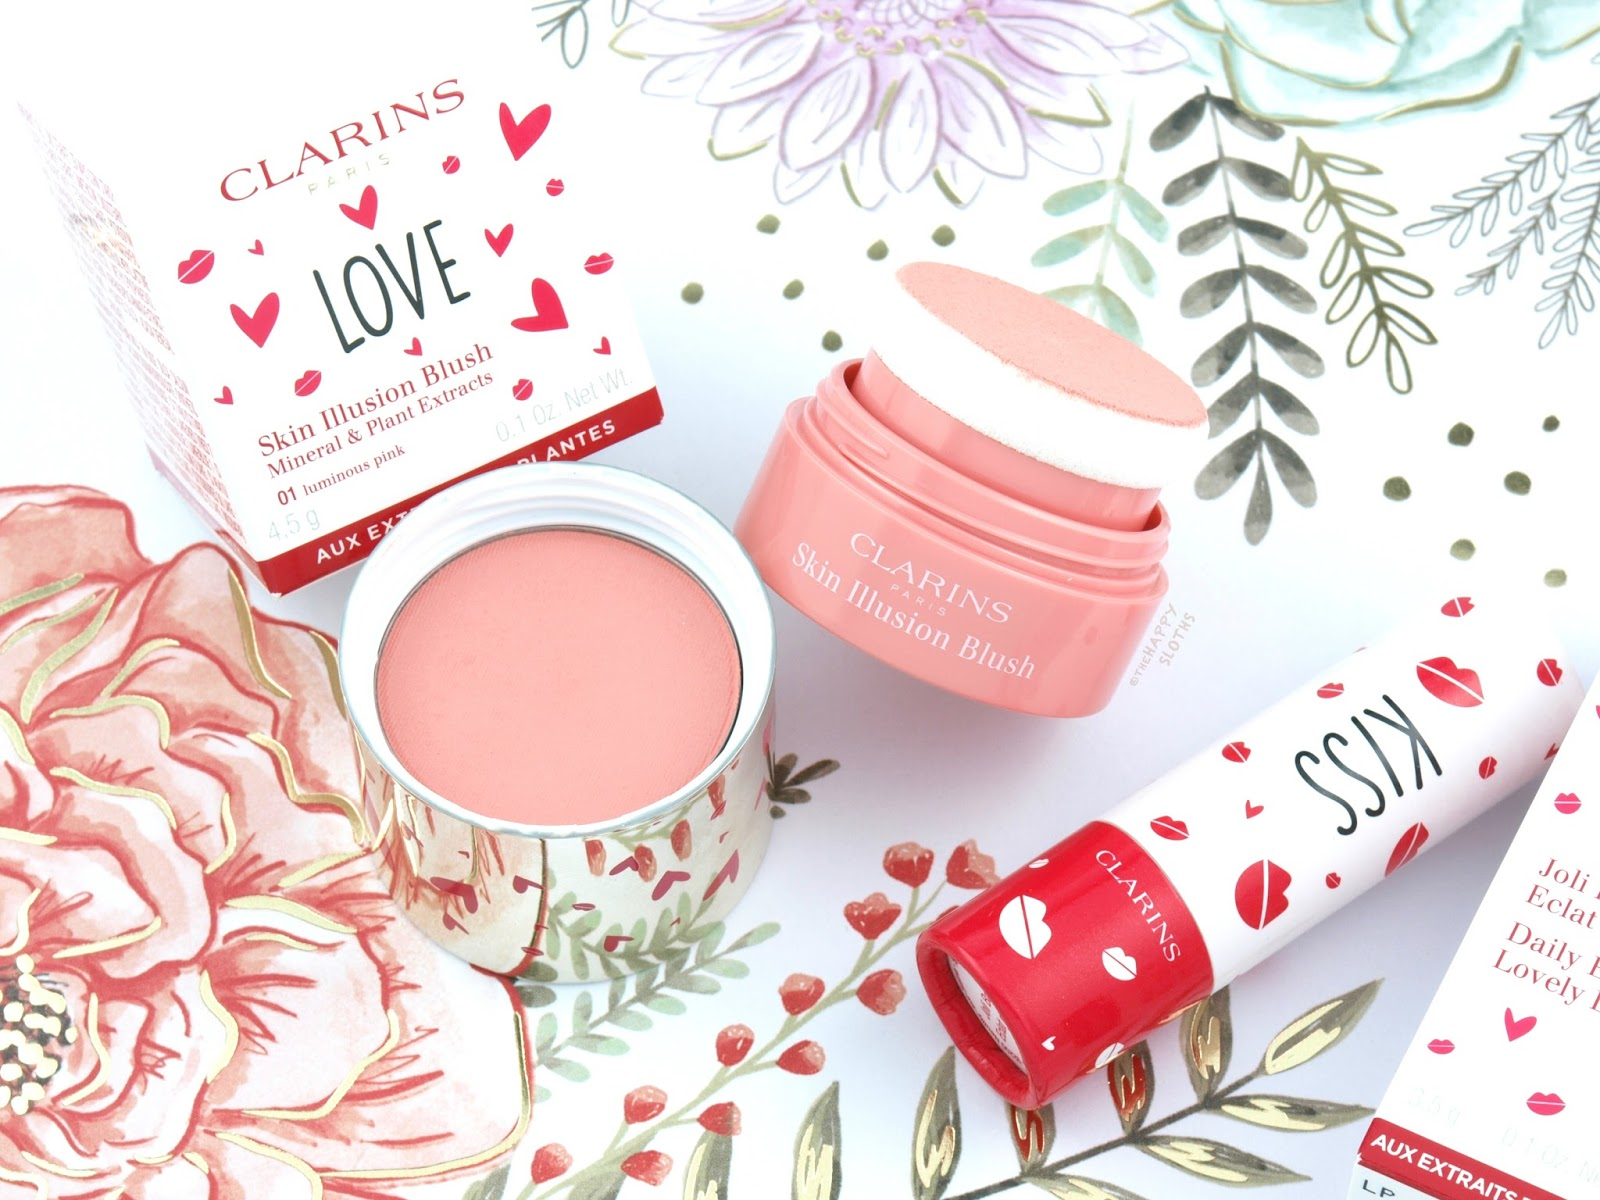 Clarins Daily Energizer Lovely Lip Balm & Skin Illusion Blush: Review and Swatches